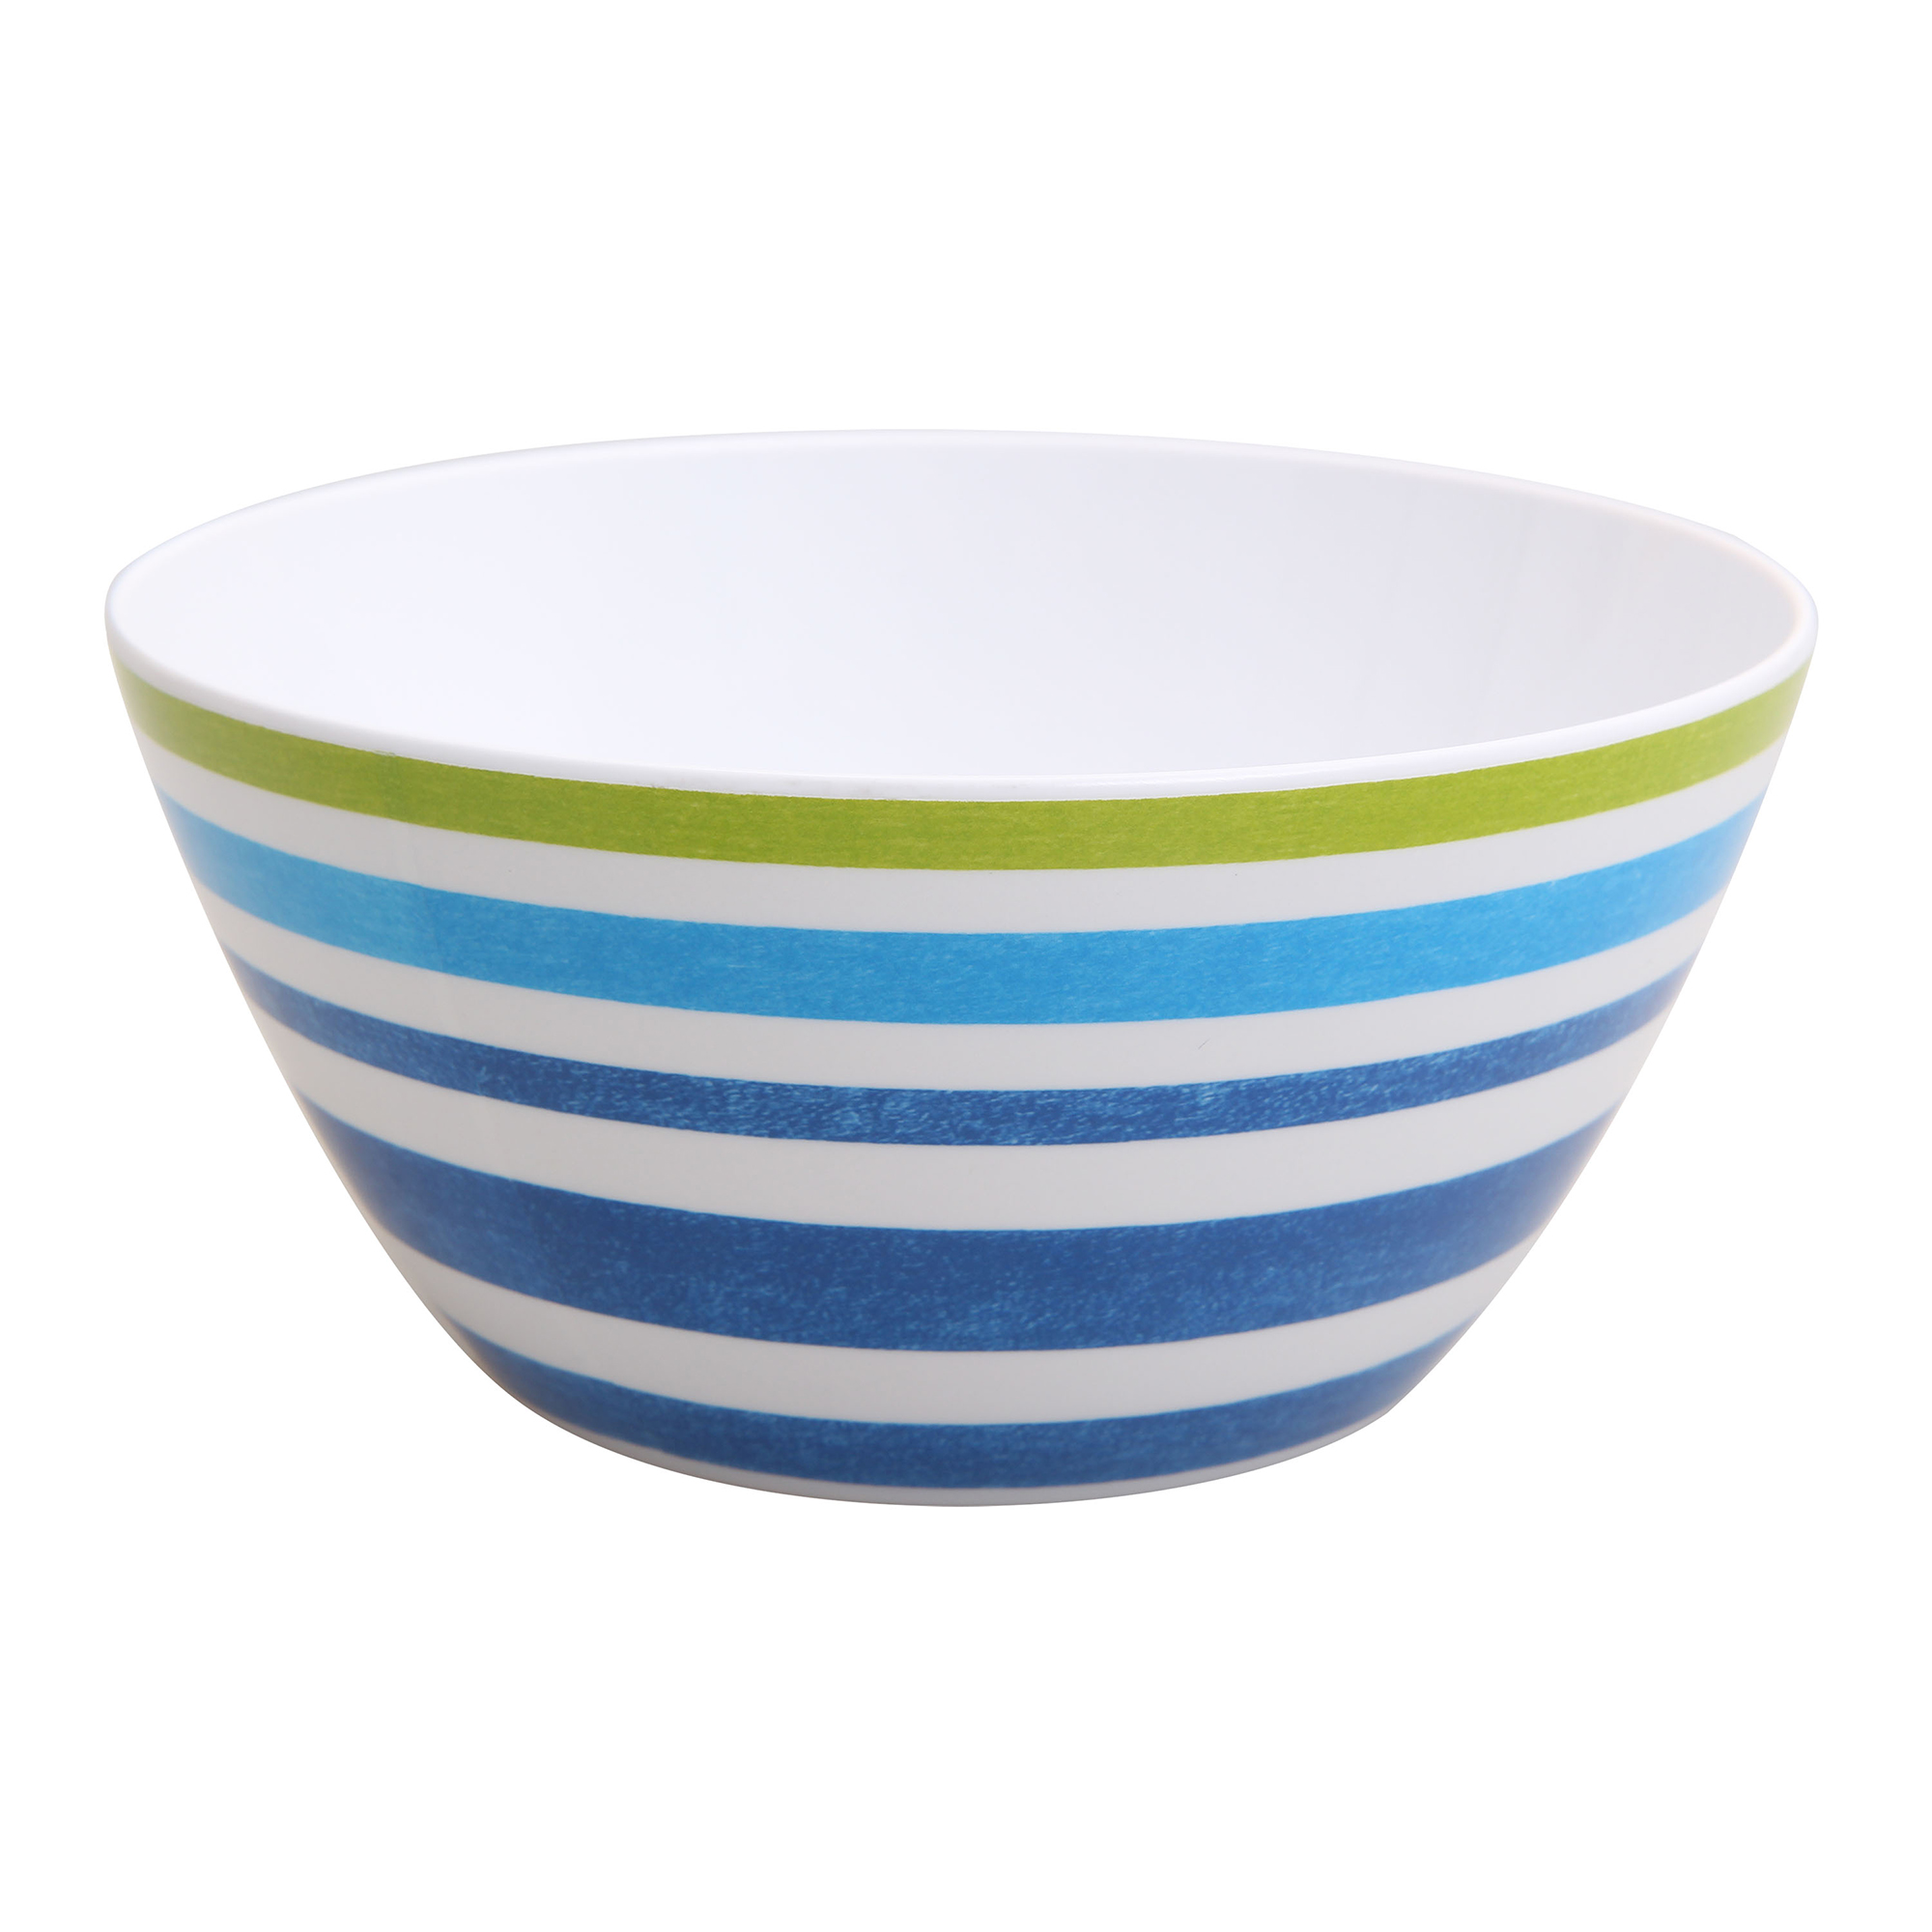 Mainstays Melamine 6-Pack Bowl Set, Blue Striped